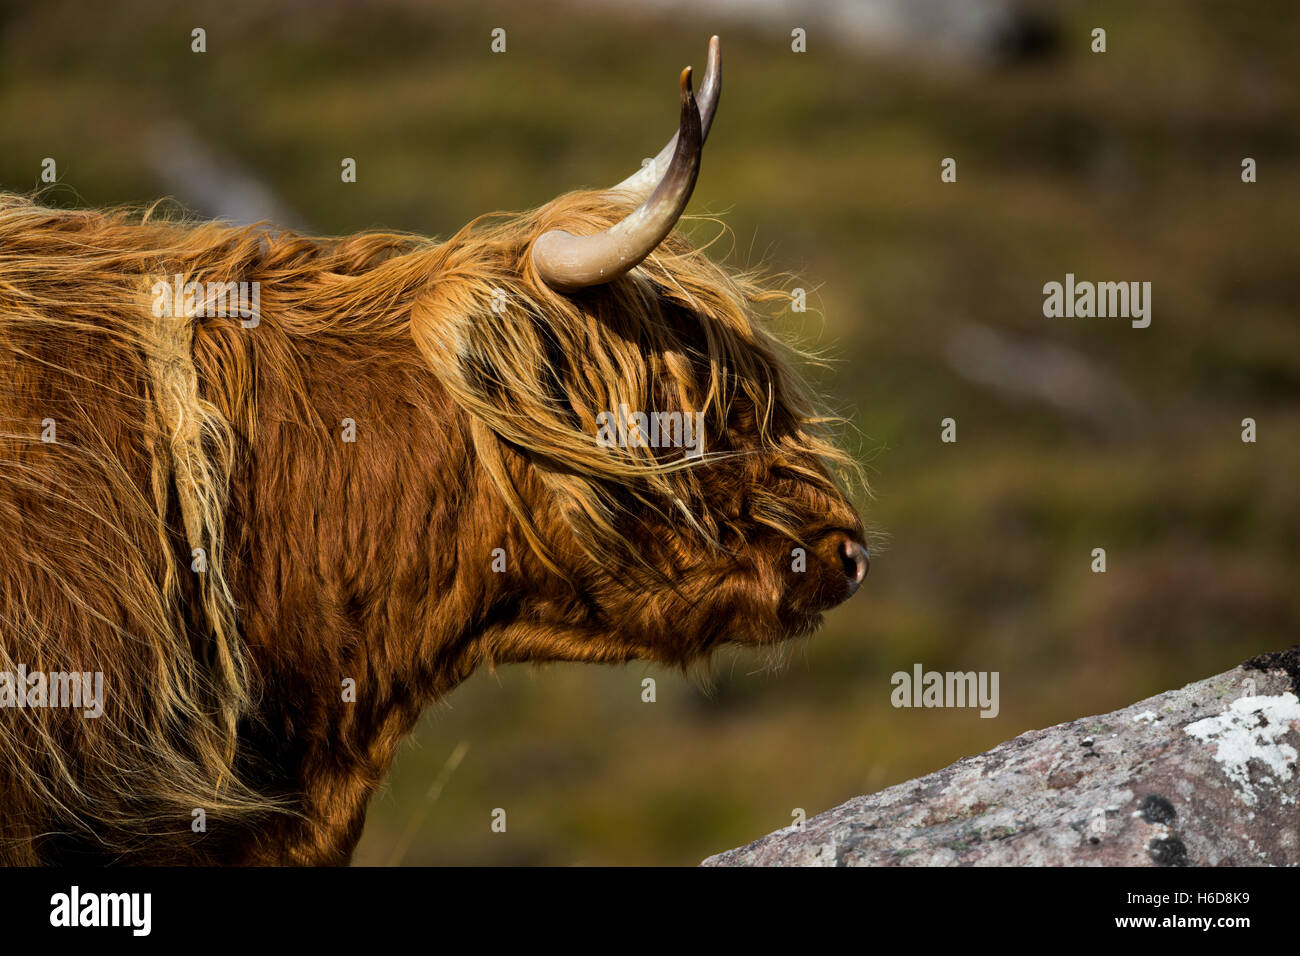 Highland Cow looking out over a rock. - Stock Image